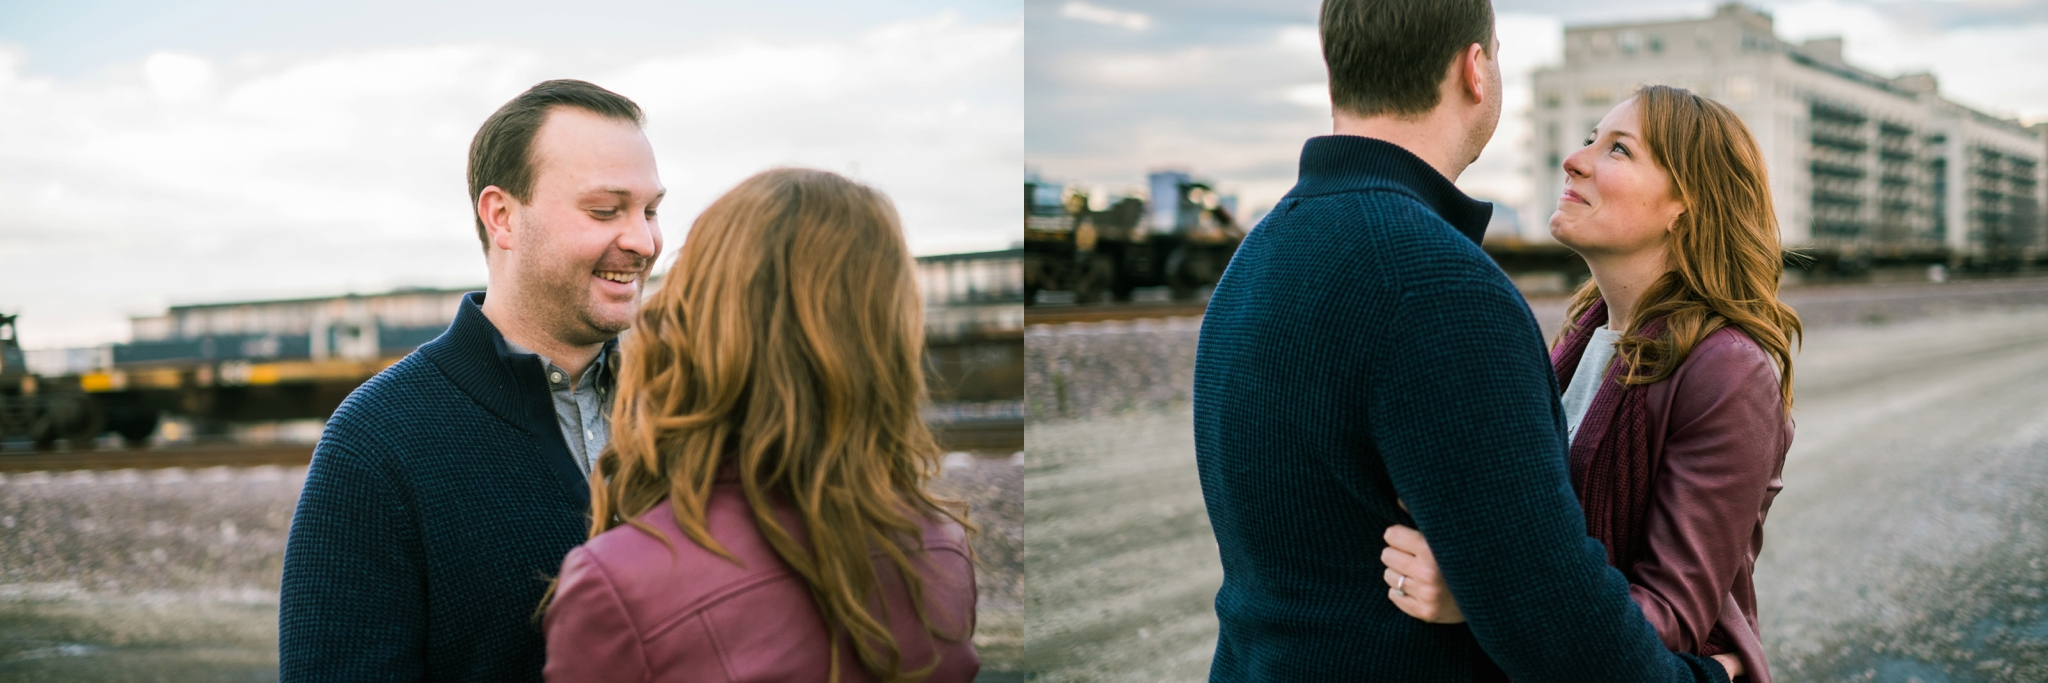 Pilsen-Engagement-Photography-071.jpg